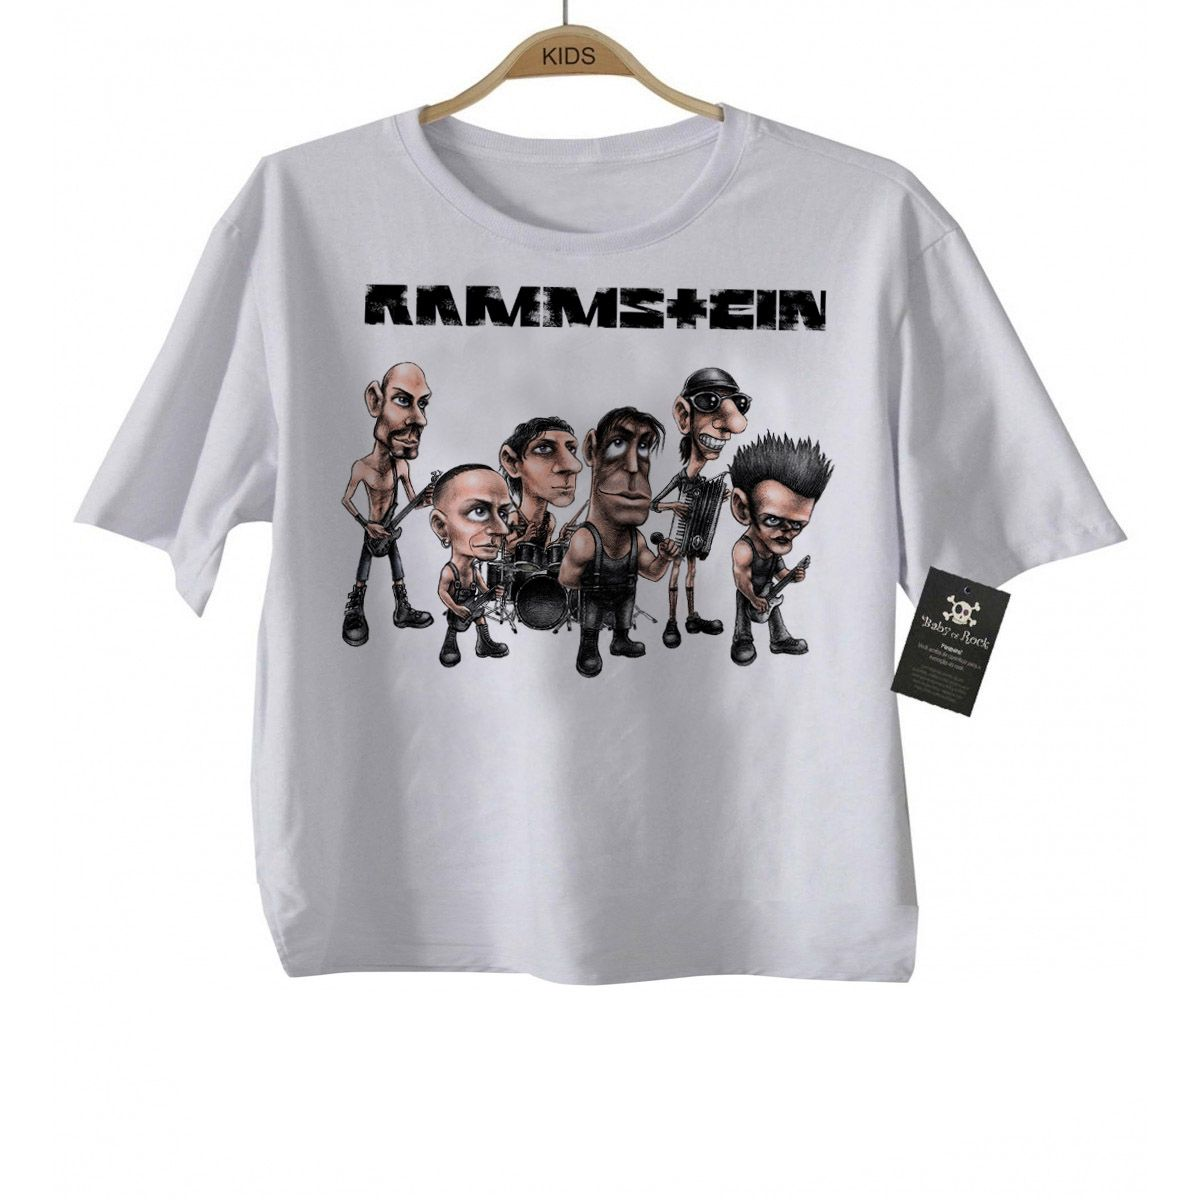 Camiseta infantil de Rock Rammstein- White   - Baby Monster S/A